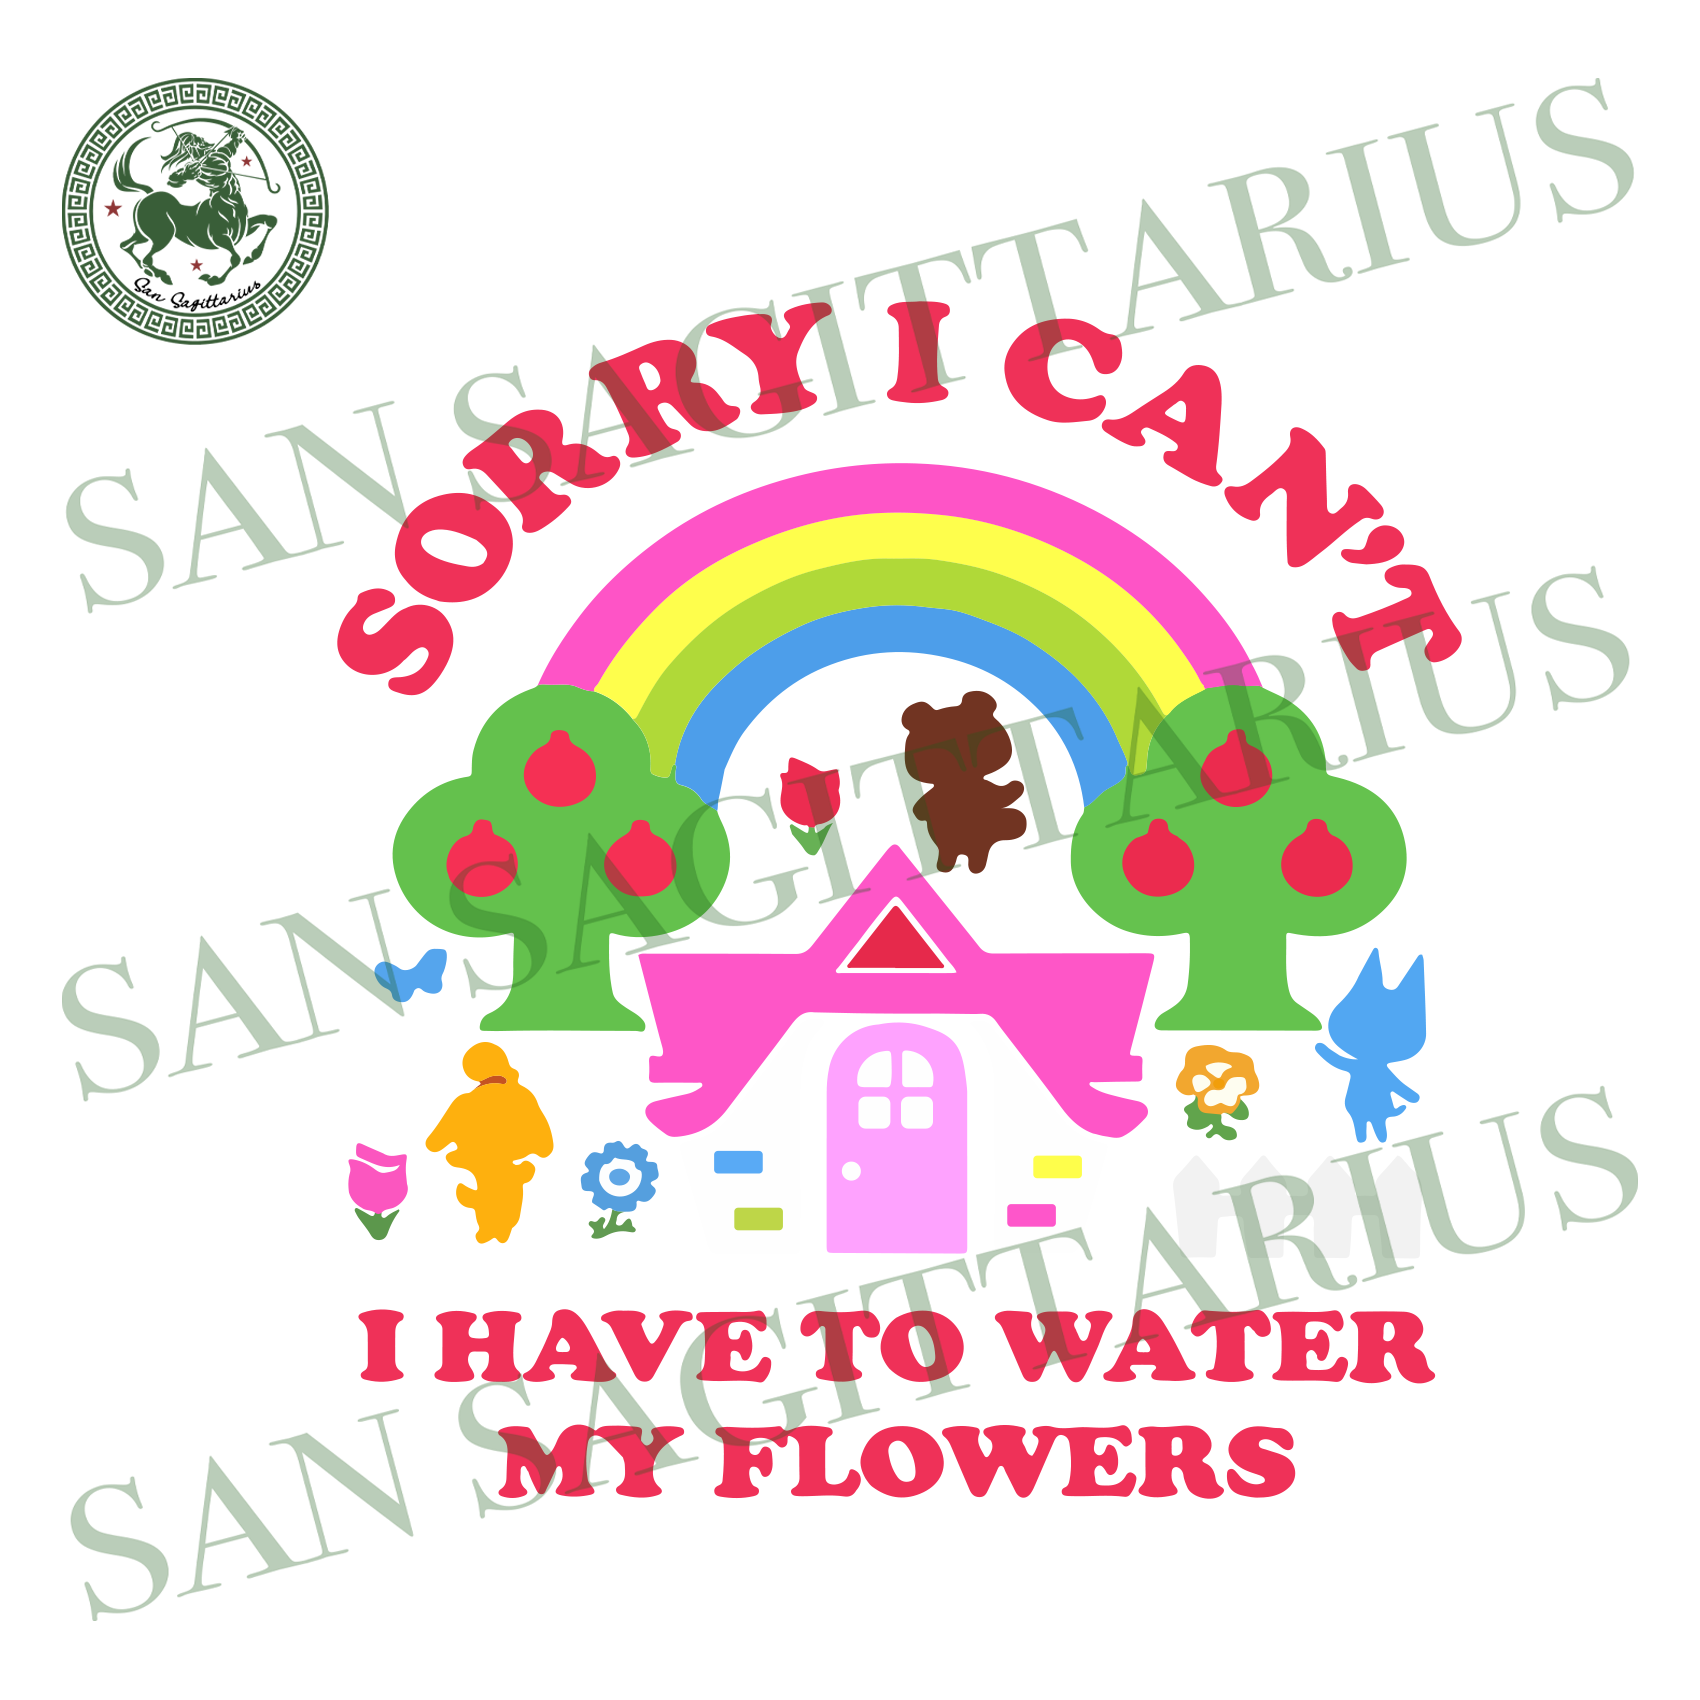 Sorry I cant I have to water my flowers, Trending svg, quote svg, rainbow svg, beautiful rainbow, flowers svg, cute flower, colour svg, tree svg, back to school svg, school svg, kids gift